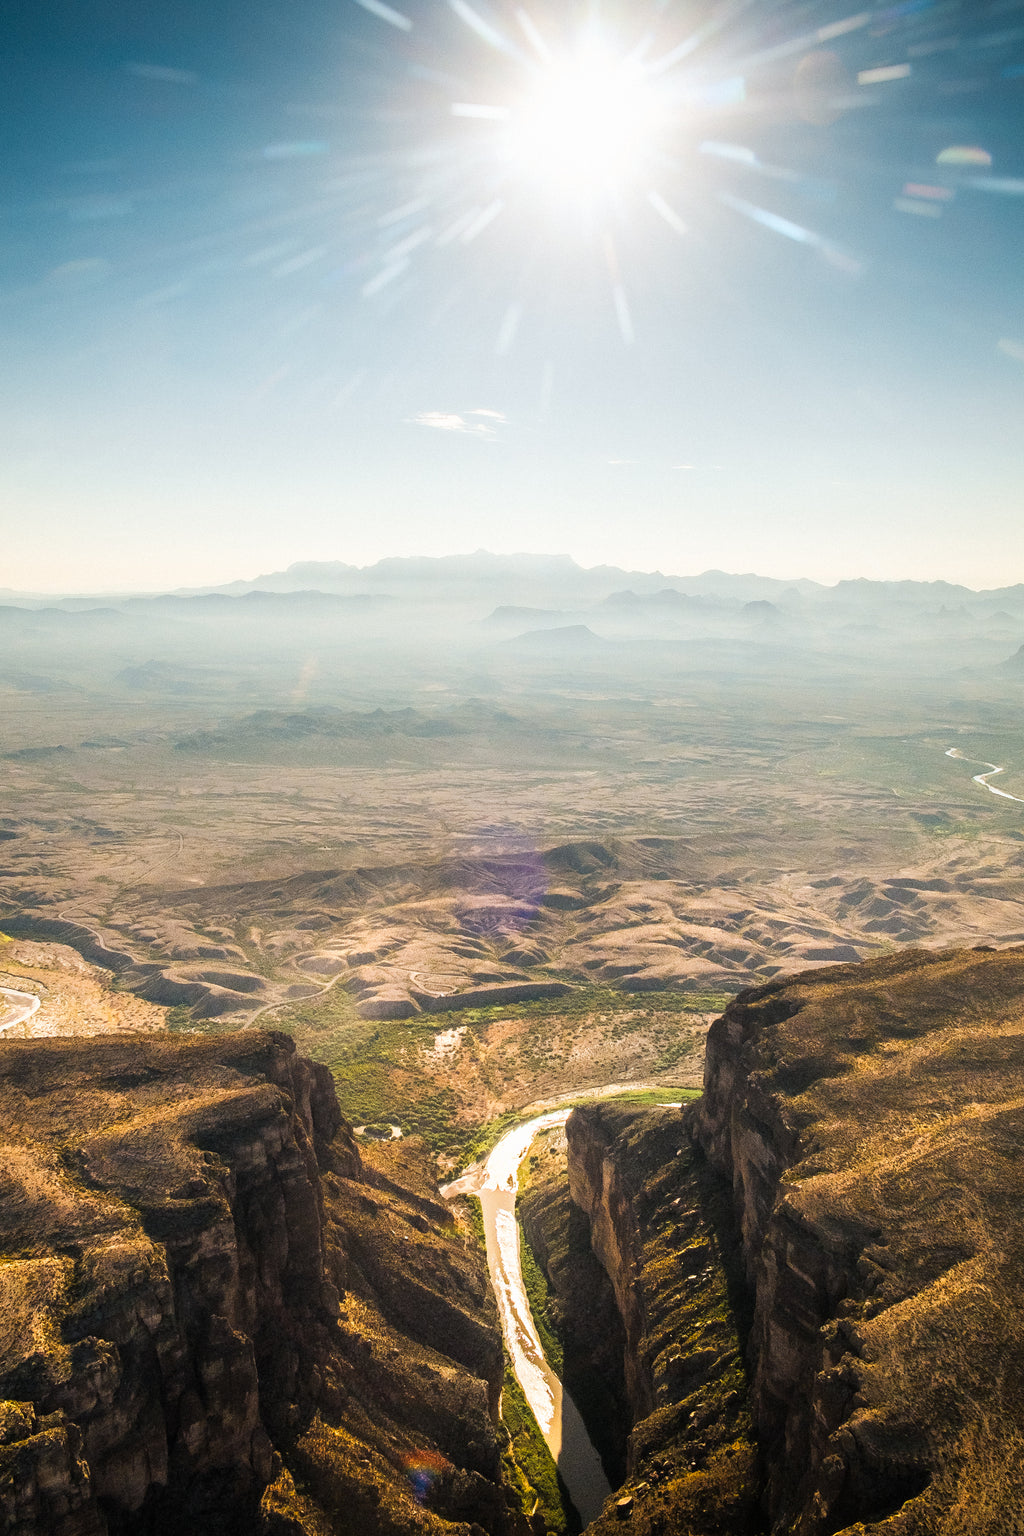 Flight over Santa Elena Canyon